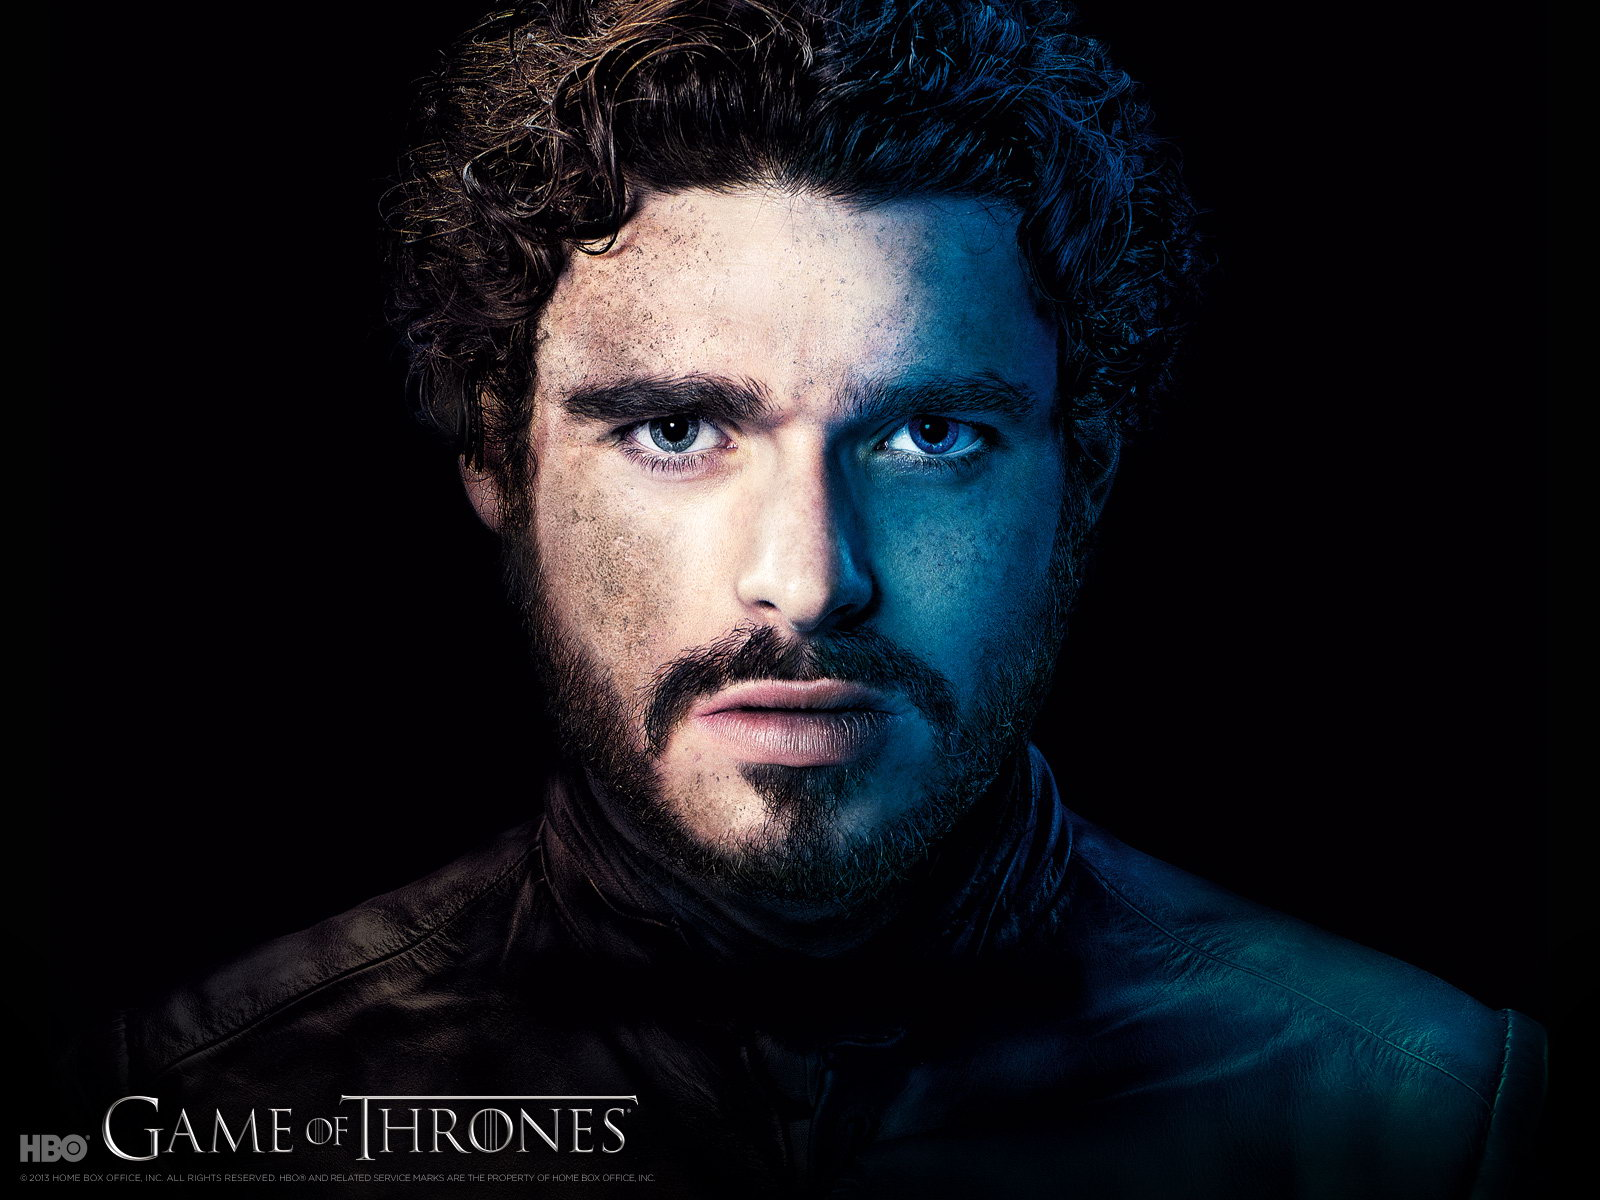 HBO-drama-Game-of-Thrones-Season-3-HD-characters-wallpaper-1600x1200-09.jpg